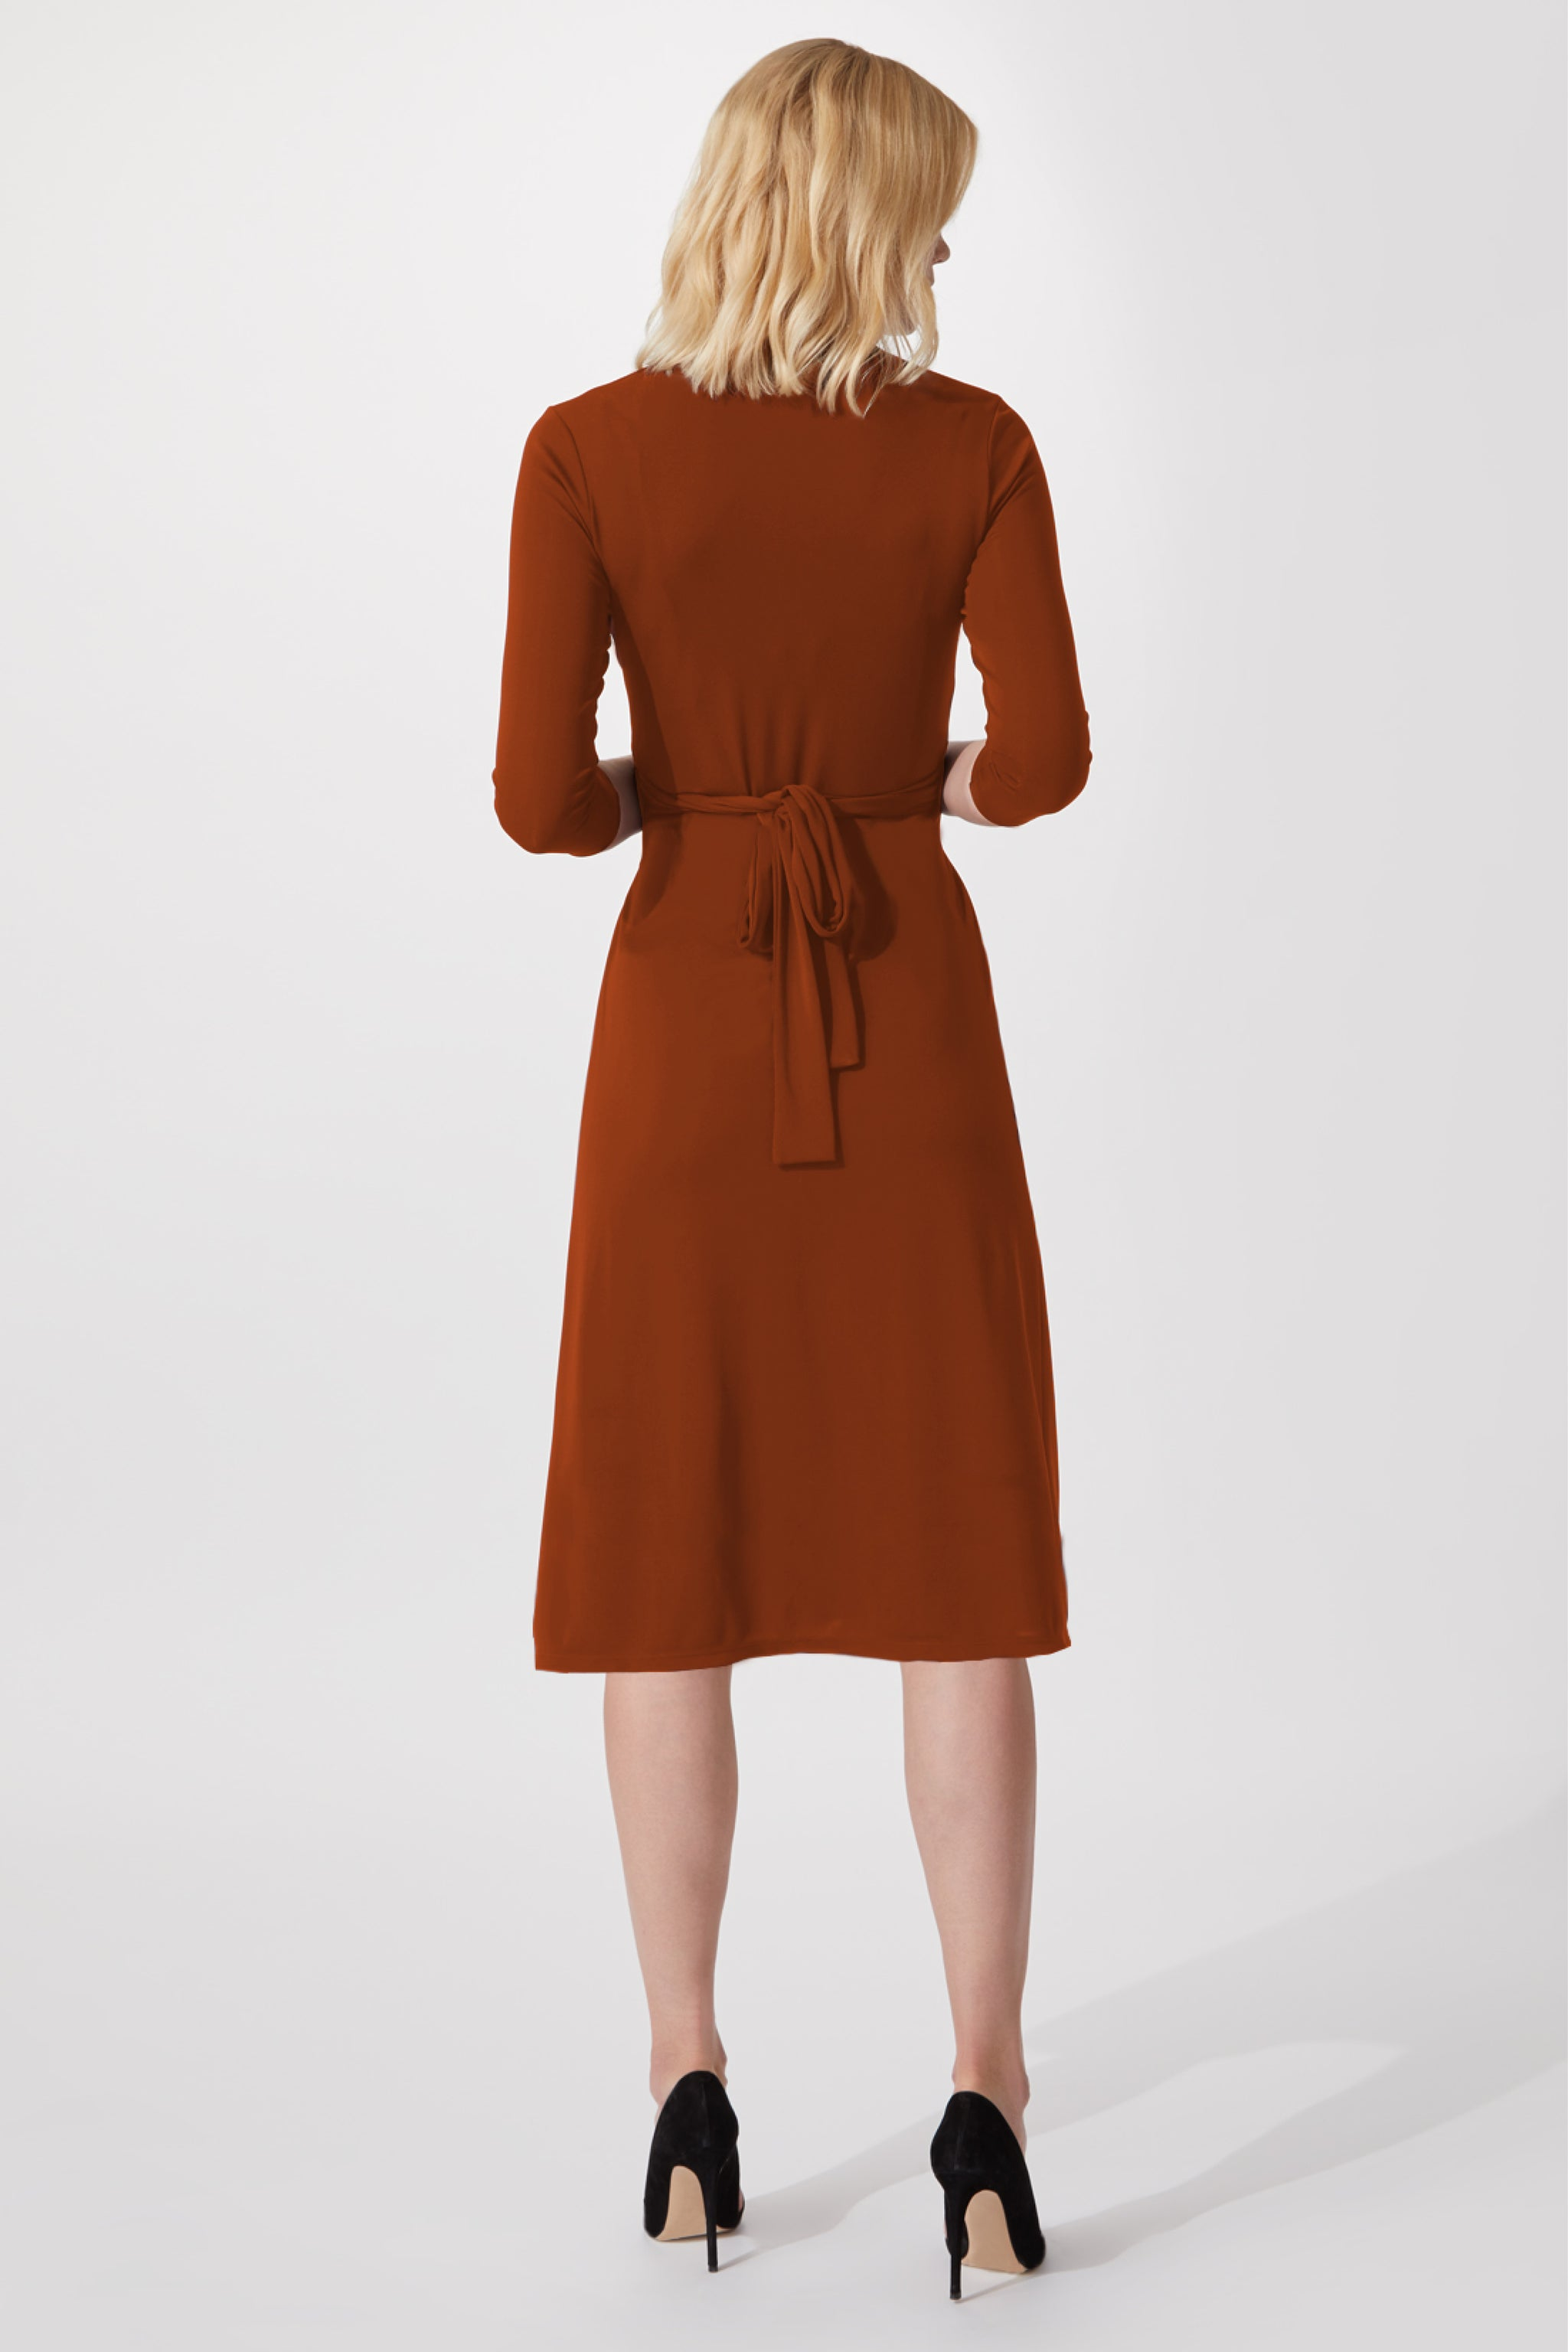 Radley Terracotta Dress